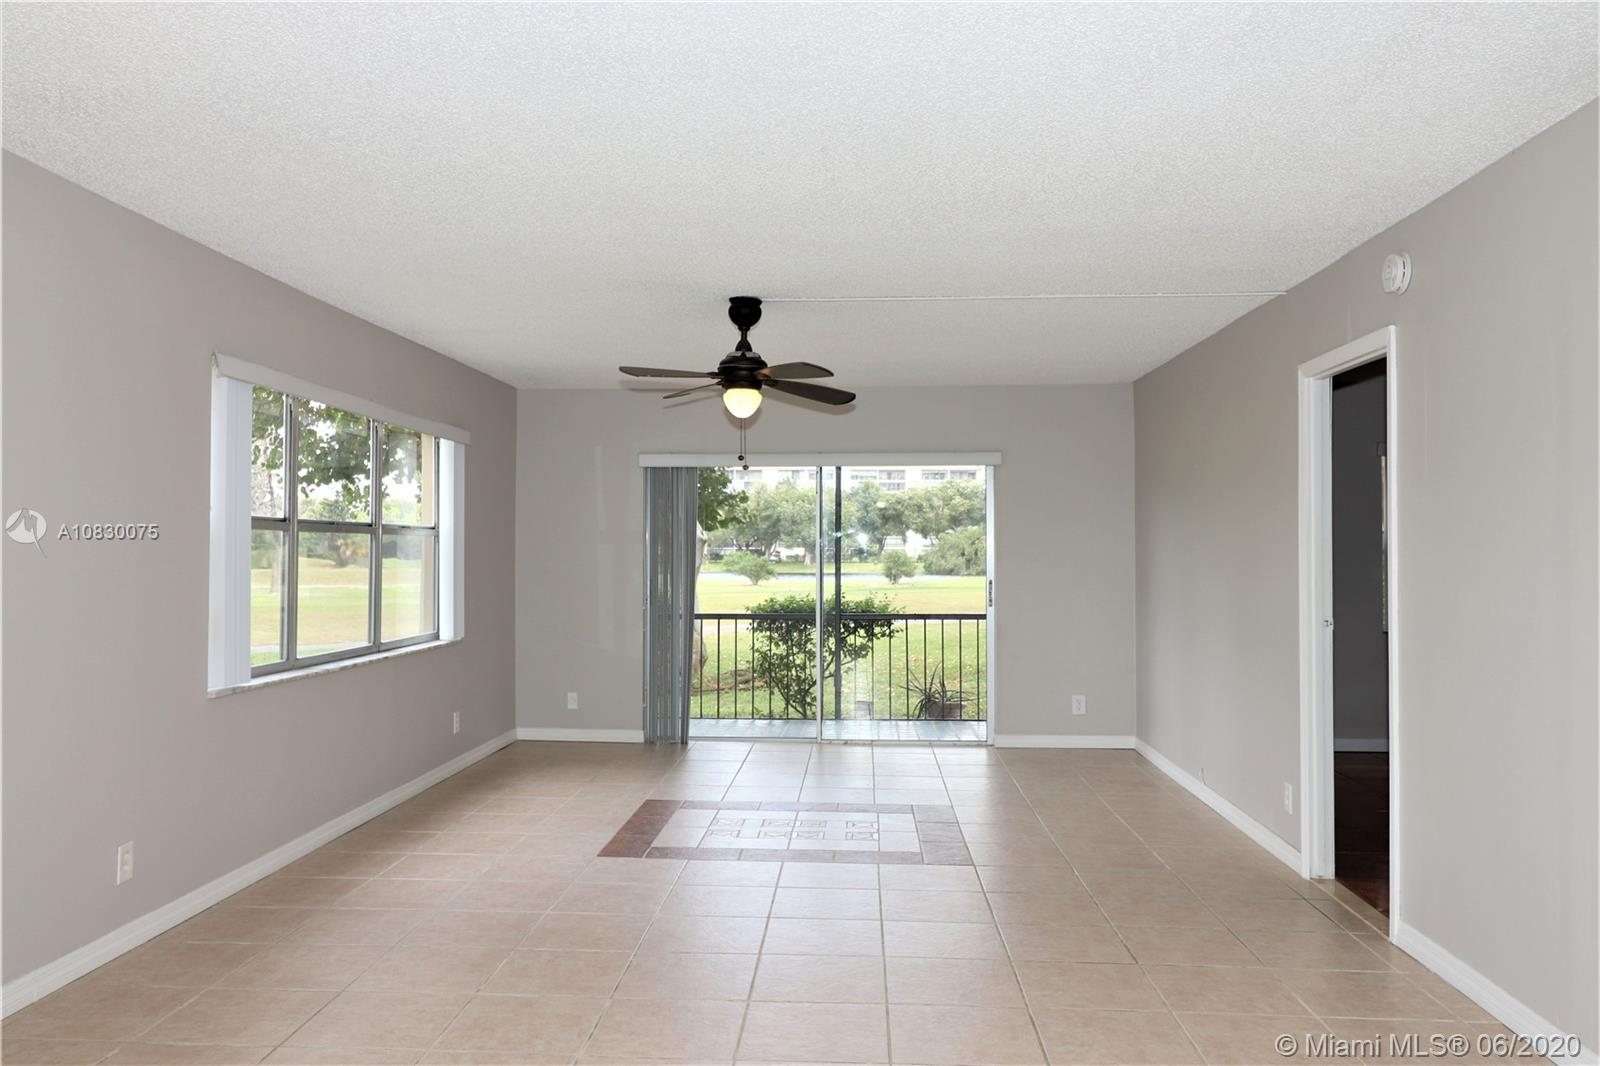 GORGEOUS REMOLDED 2 BEDROOM / 2 BATHROOM CORNER UNIT ON FIRST FLOOR WITH OVER LOOKING GOLF COURSE FULL OF NATURAL LIGHT.SPLIT PLAN 2 SPECIOUS BEDROOM. 2 FULL REMODELED BATHROOM AND HUGE WALKING CLOSET IN MASTER.NEW KITCHEN WITH GRANITE COUNTER TOP ON HARD WOOD CABINET WITH NEW STAINLESS STEAL APPLIANCES.NEW WATER HEATER NEWLY A/C INSTALLED 2015. NEW BLINDS. FRESHLY PAINTED MAKE UNIT AS YOUR GREAT NEXT HOME.OPEN SCREENED PATIO FACE TO GOLF COURT WITH PANORAMIC VIEW.ALL AGES COMMUNITY WITH GREAT AMENITIES SUCH AS POOL, LAUNDRY FACILITY AND EXTRA STORAGE SPACE IN SAME FLOOR.WATER, CABLE,TRASH REMOVAL,PEST CONTROL,SECURITY WITH 24 HOURS GUARD AT THE GATE. . HURRY WON'T LAST!